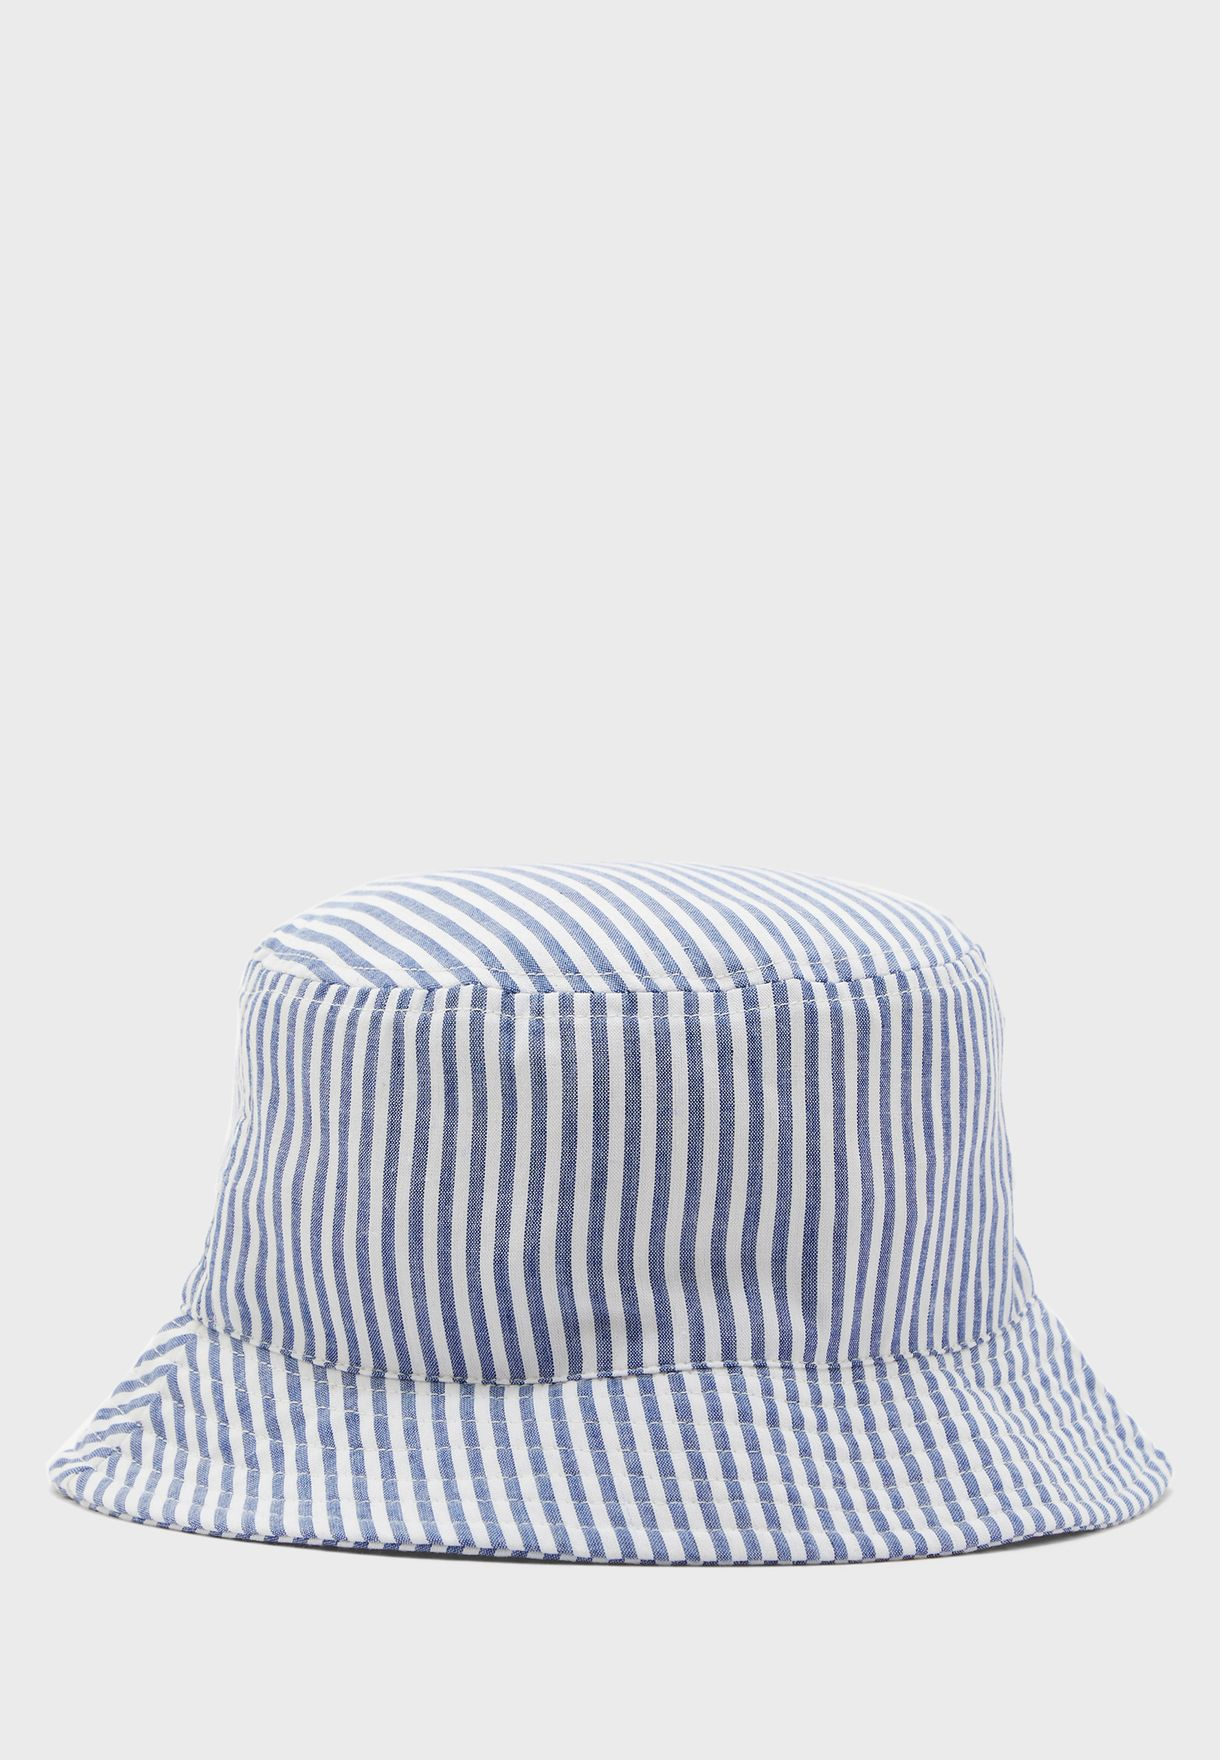 Buy Forever 21 Stripes Flat Top Striped Sunshade Hat For Women In Muscat Other Cities 271094